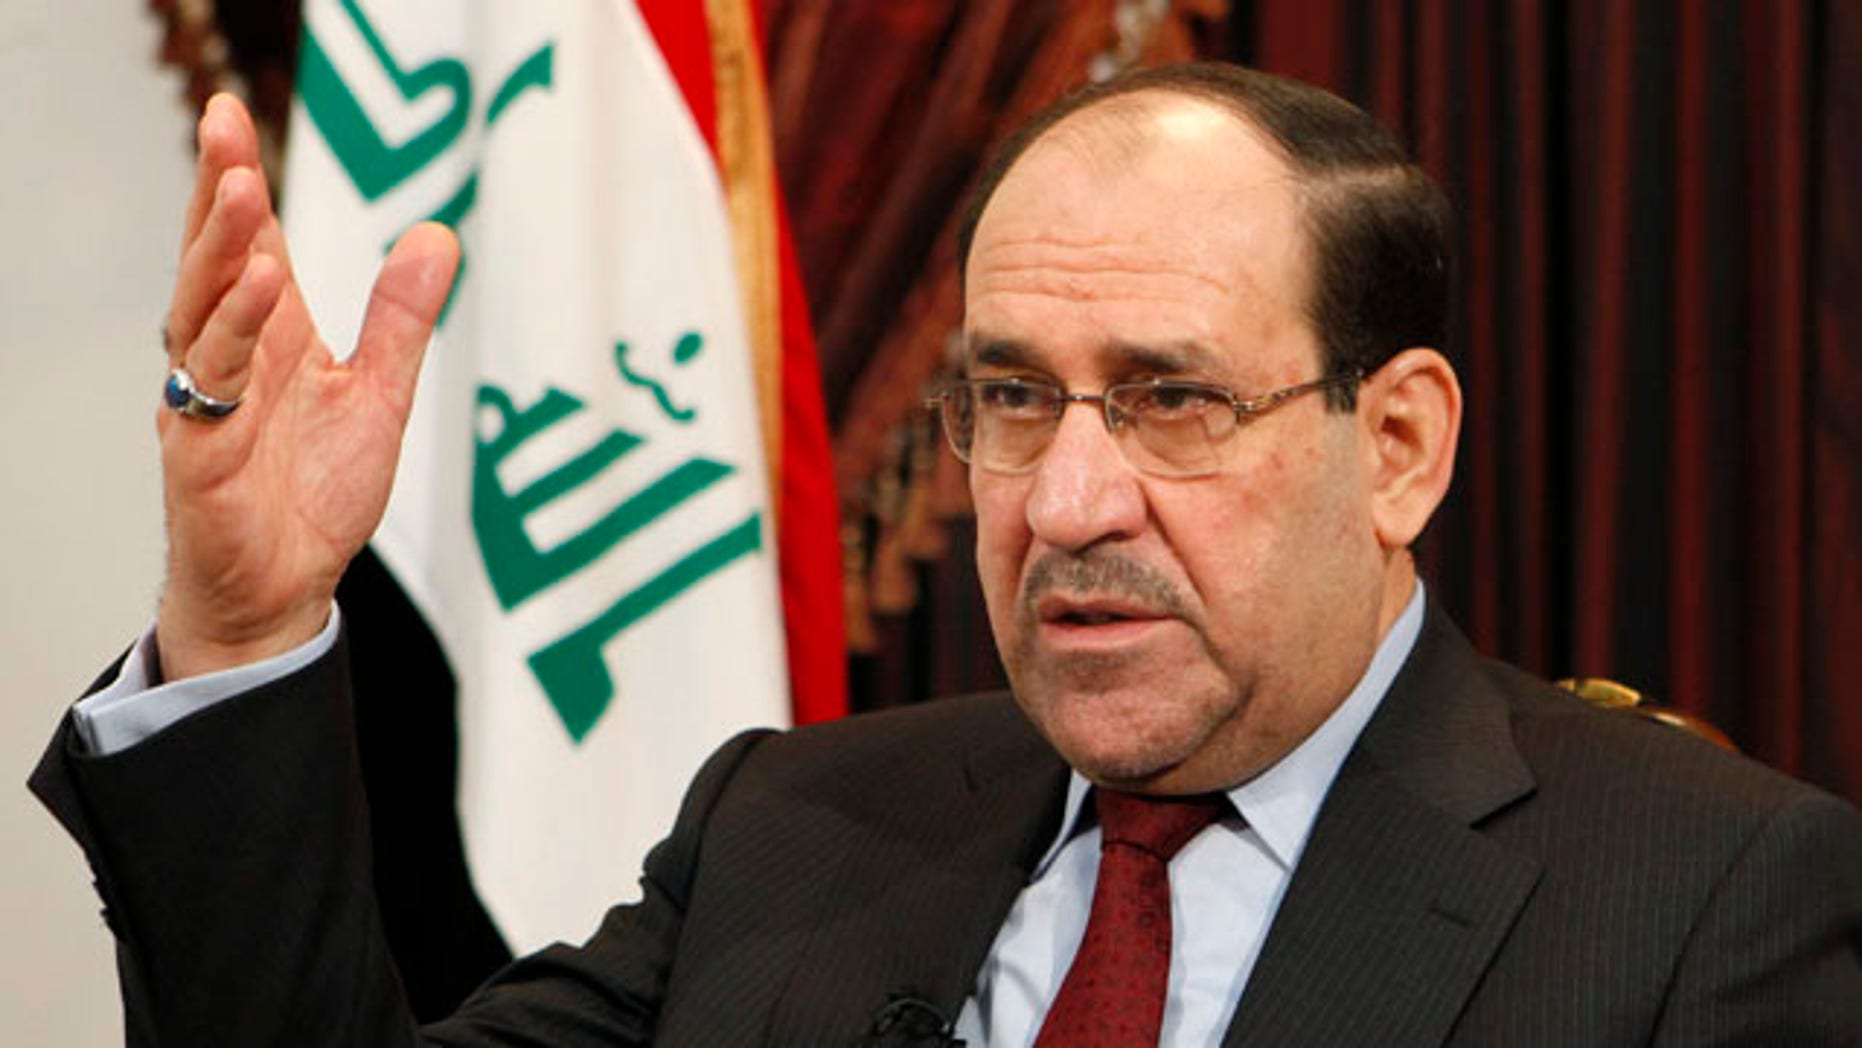 Dec. 3, 2011: Iraq's Prime Minister Nouri al-Maliki speaks during an interview with The Associated Press in Baghdad, Iraq.